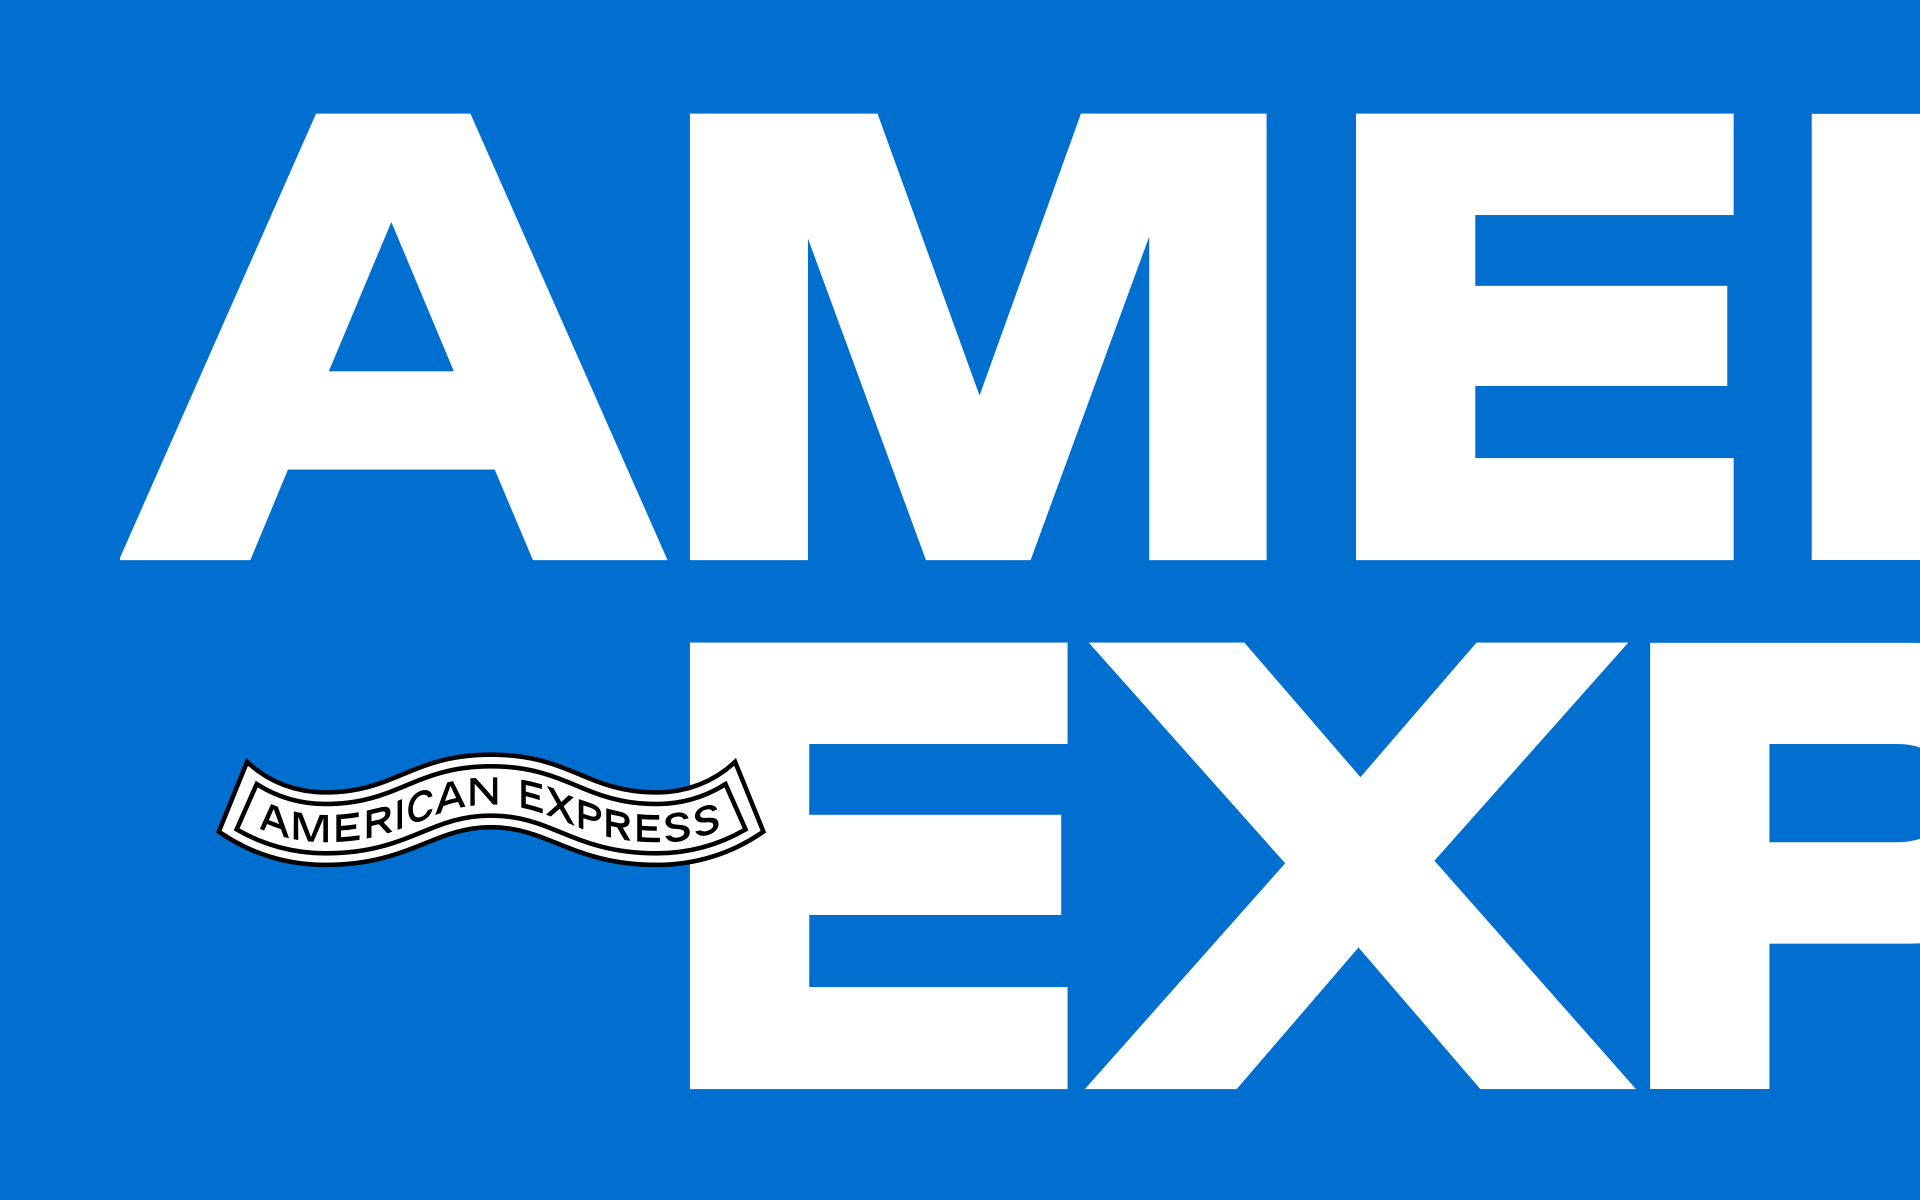 American Express Brand Site